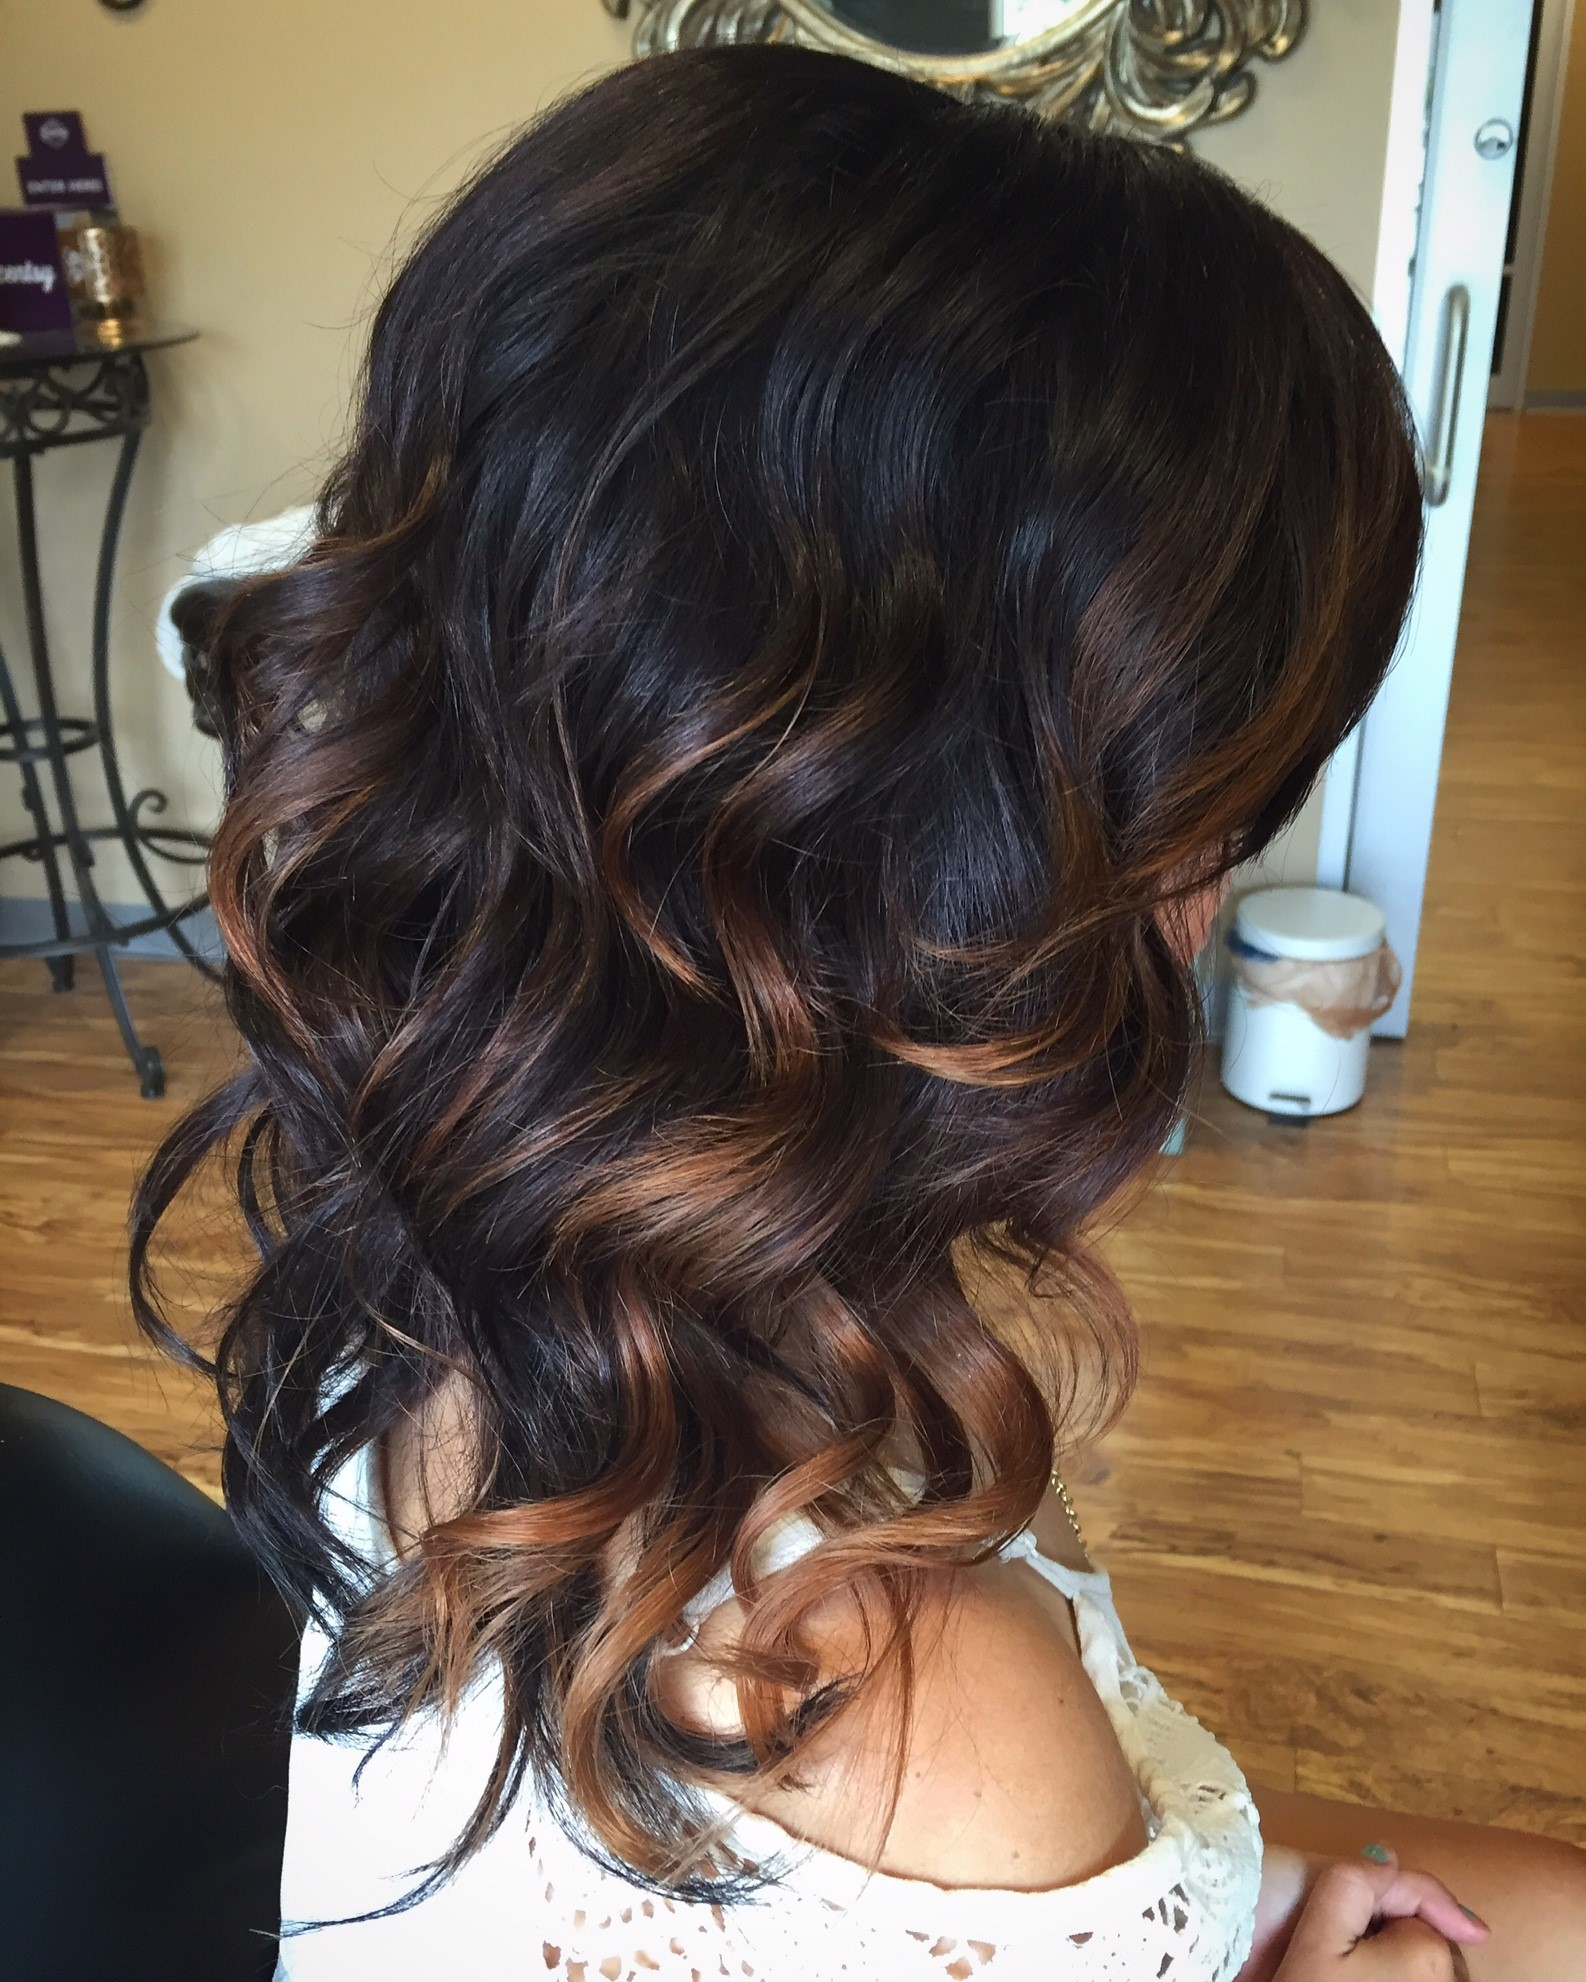 Splash Of Balayage Hair Color Paired